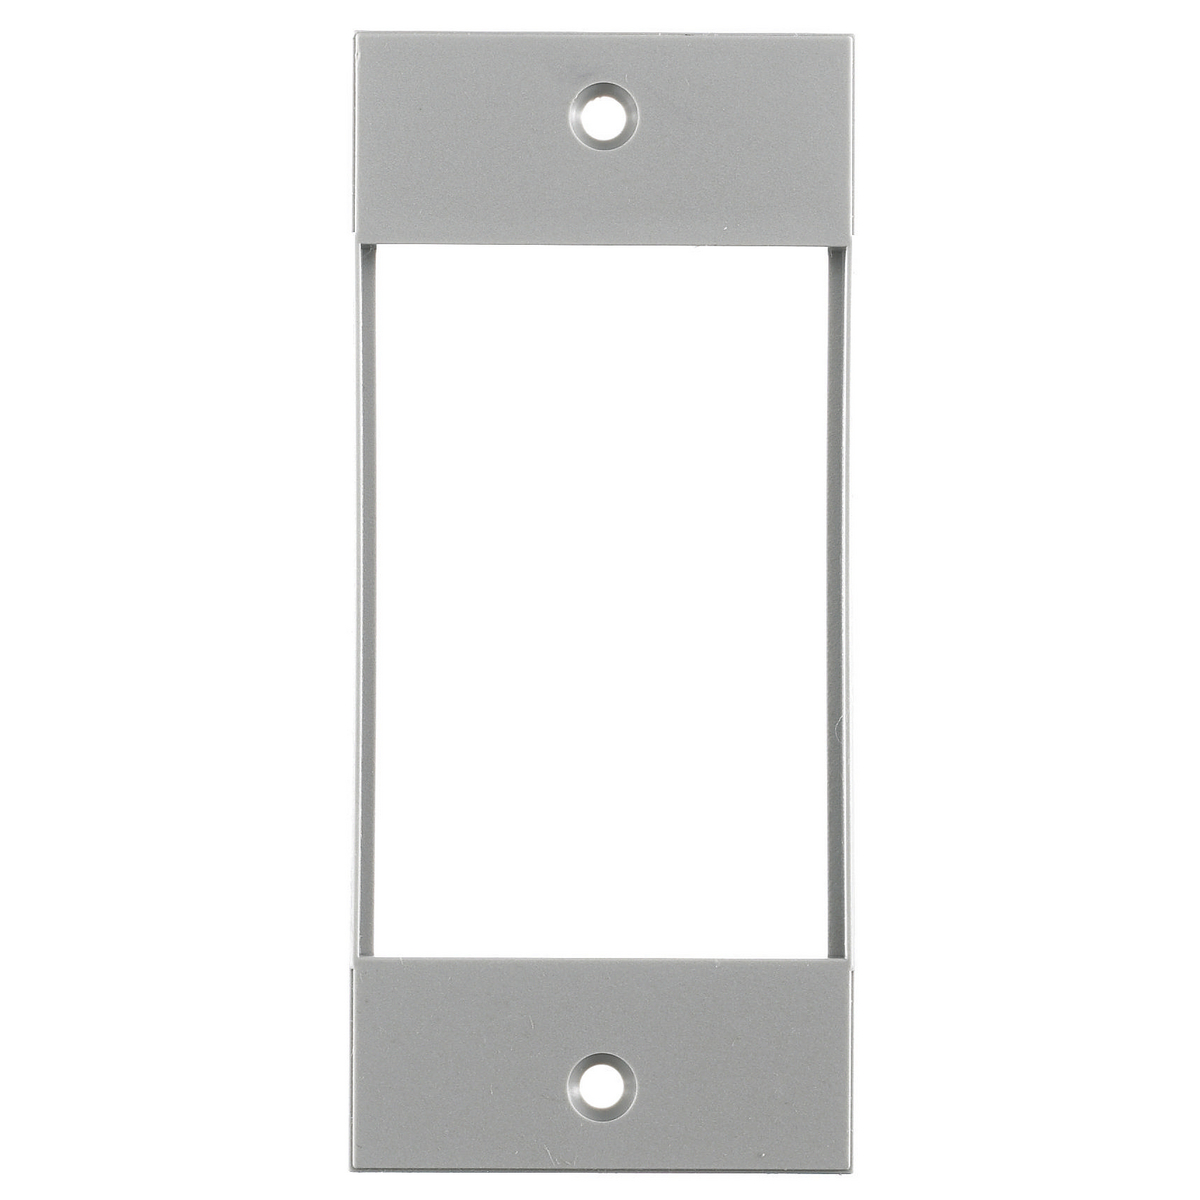 Hubbell HBLOR306SGYFACEPLATE, SCREW-MT, ORTRONICS, GY